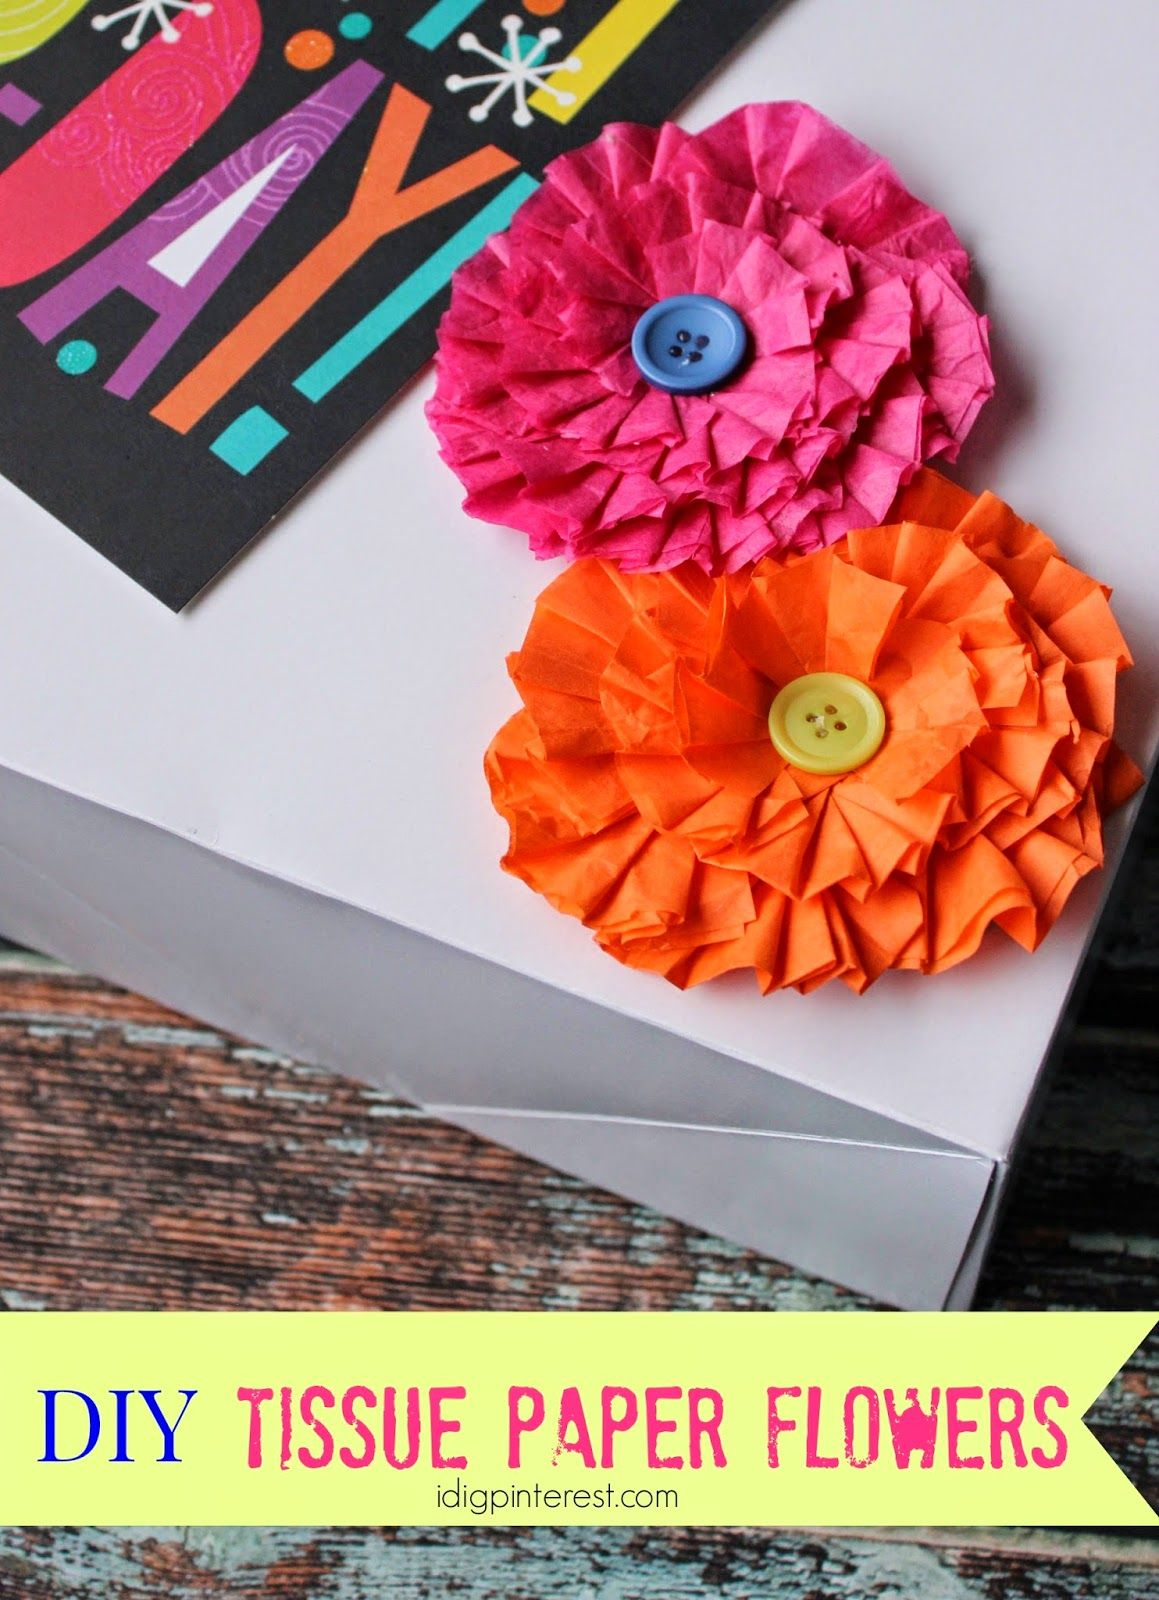 How to make decorative tissue paper flowers diy ideas pinterest i dig pinterest how to make decorative tissue paper flowers mightylinksfo